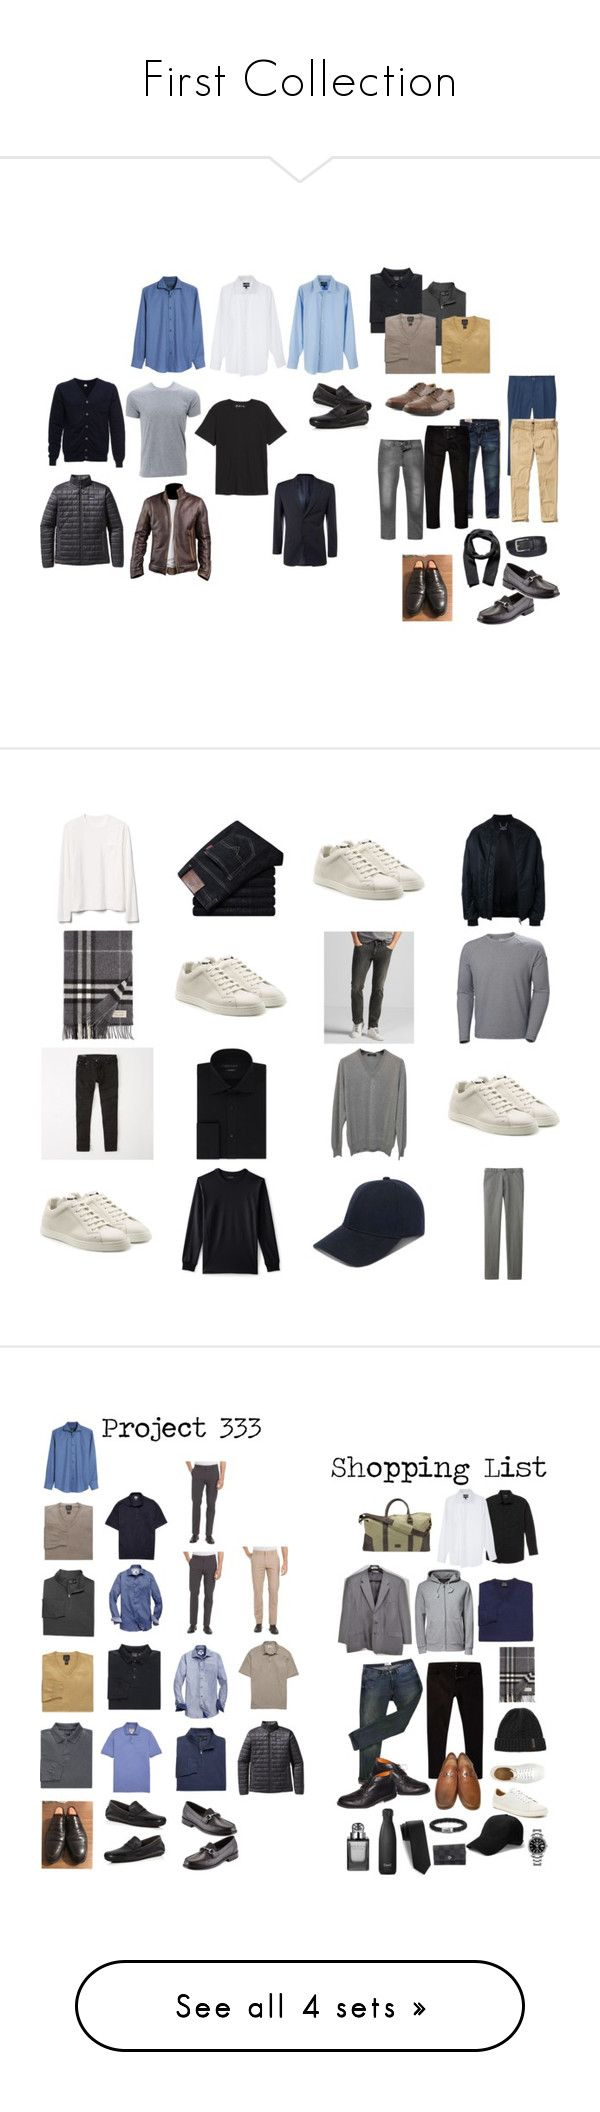 """First Collection"" by chumiller22 on Polyvore featuring Public Opinion, Simplex Apparel, Bugatchi, Altalana, MANGO MAN, Hollister Co., River Island, Portolano, Columbia and To Boot New York"